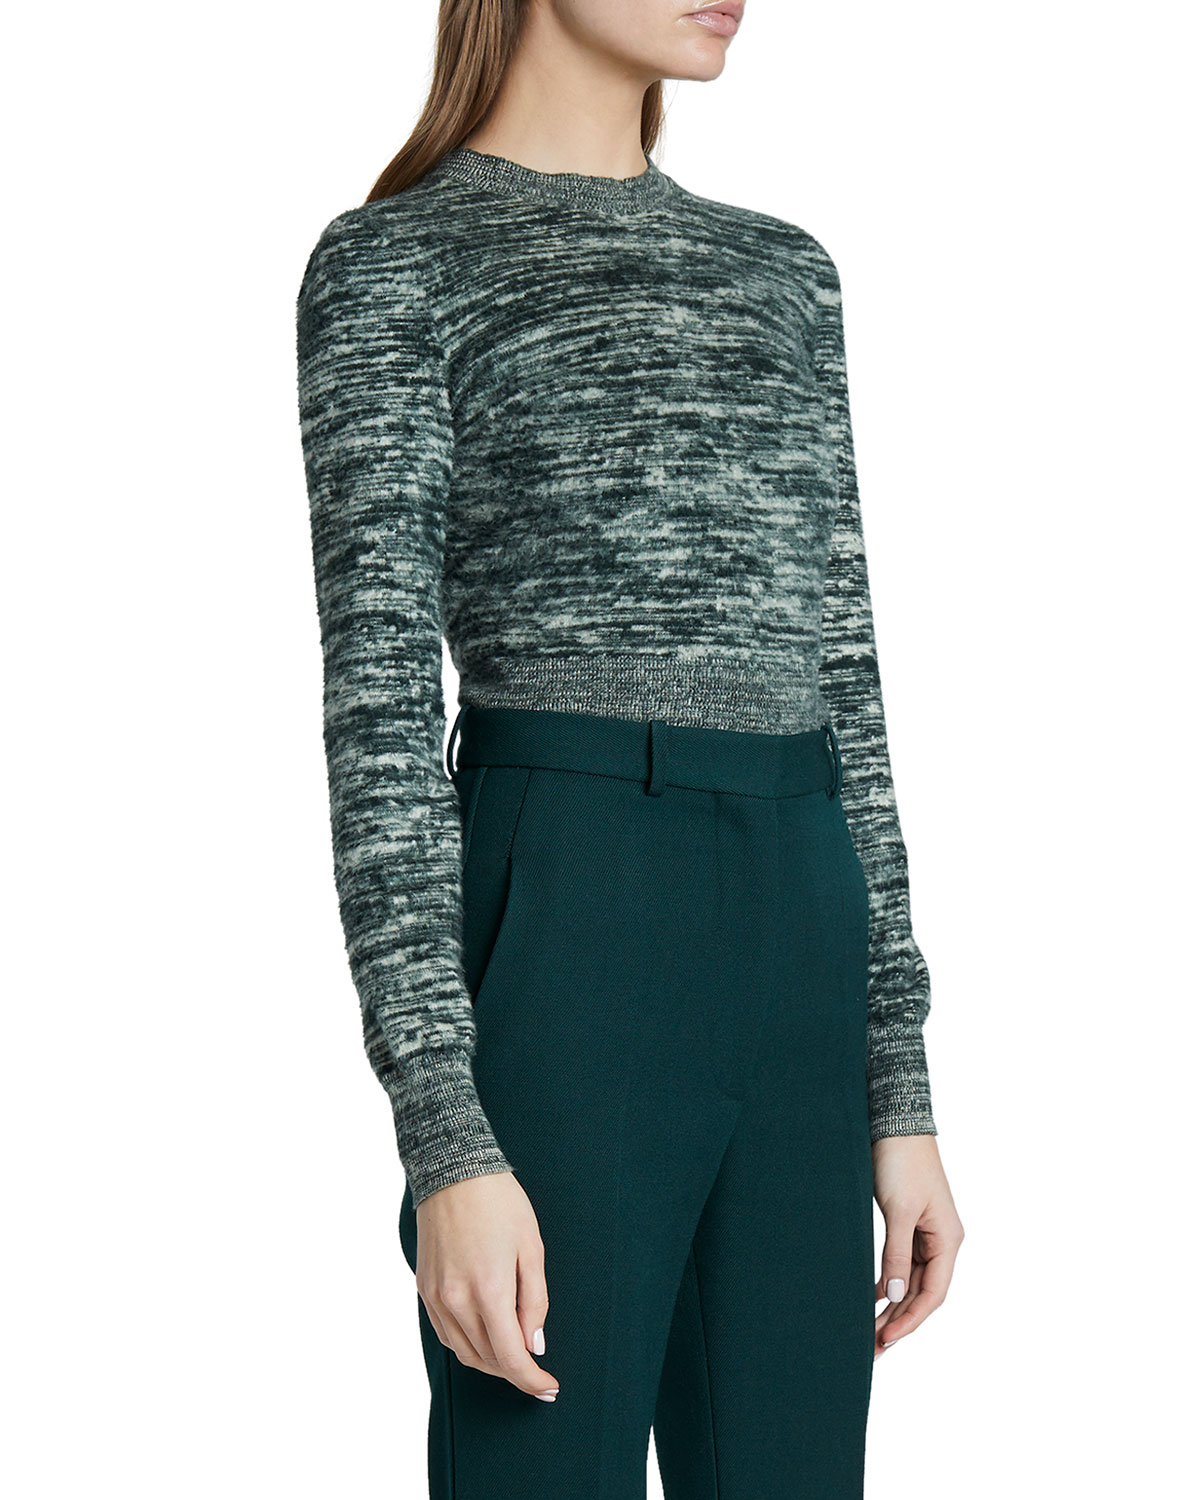 Victoria Beckham Space-Dye Cotton Sweater